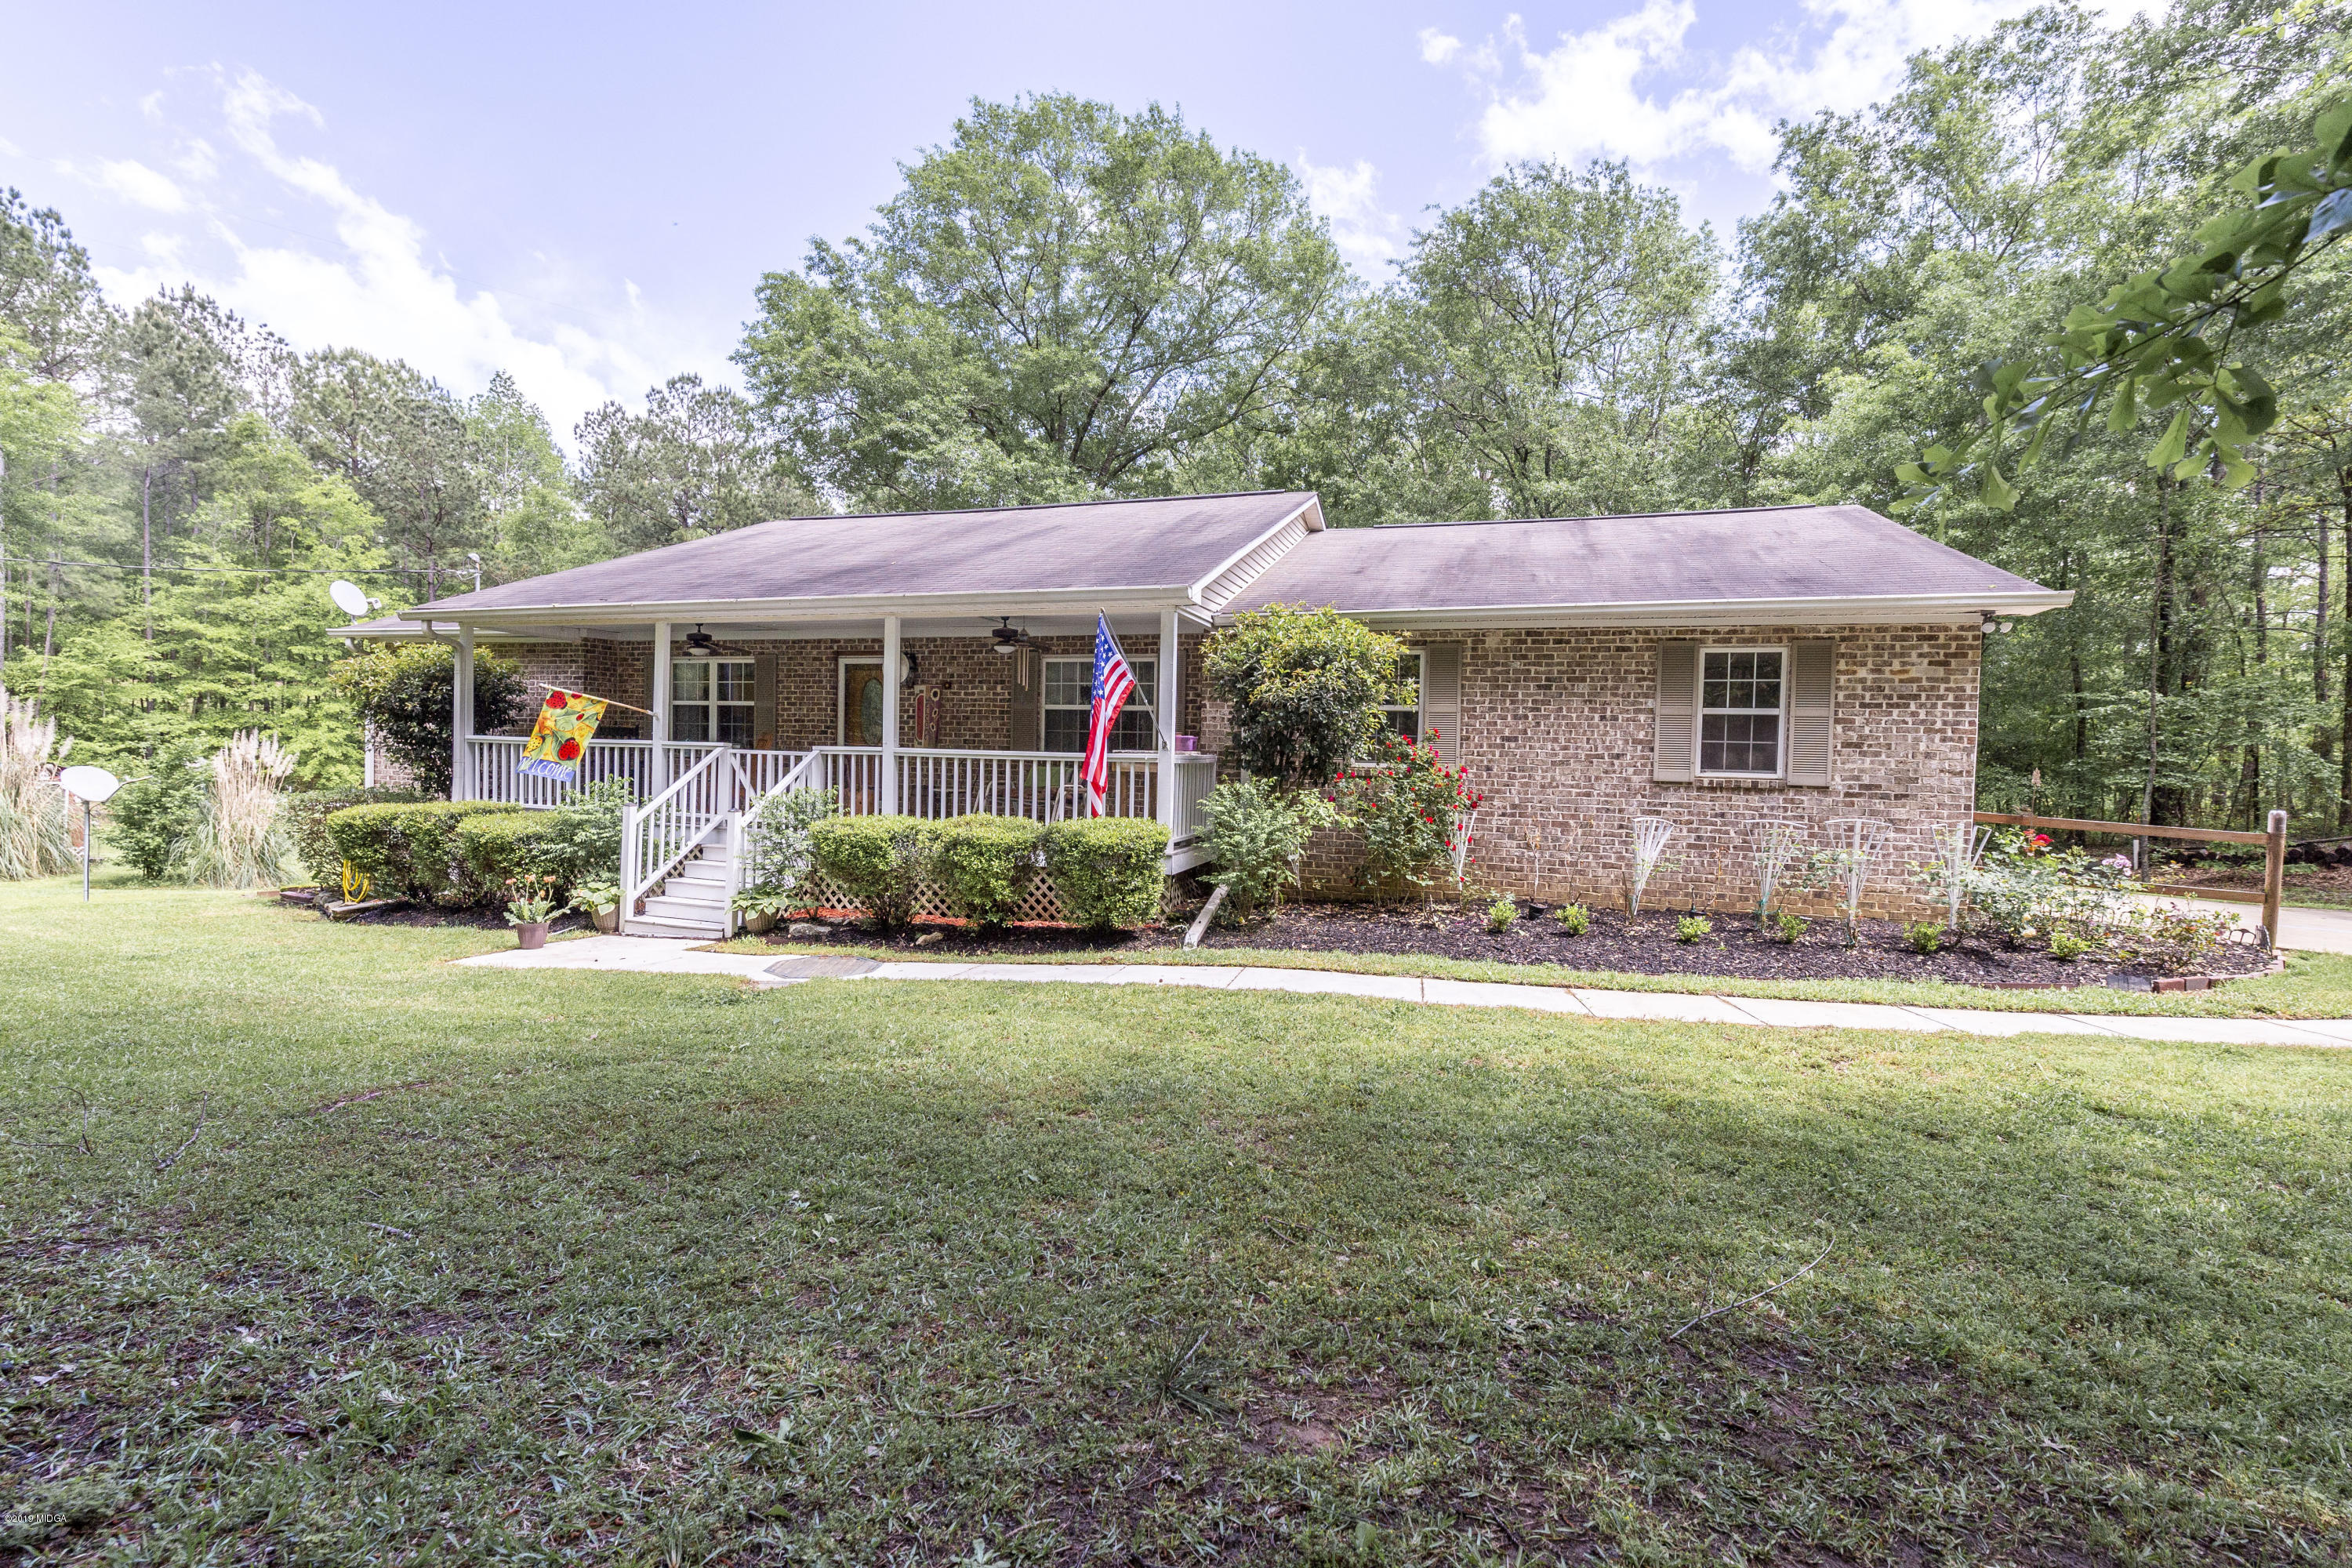 349 Christian Road, Juliette, GA 31046